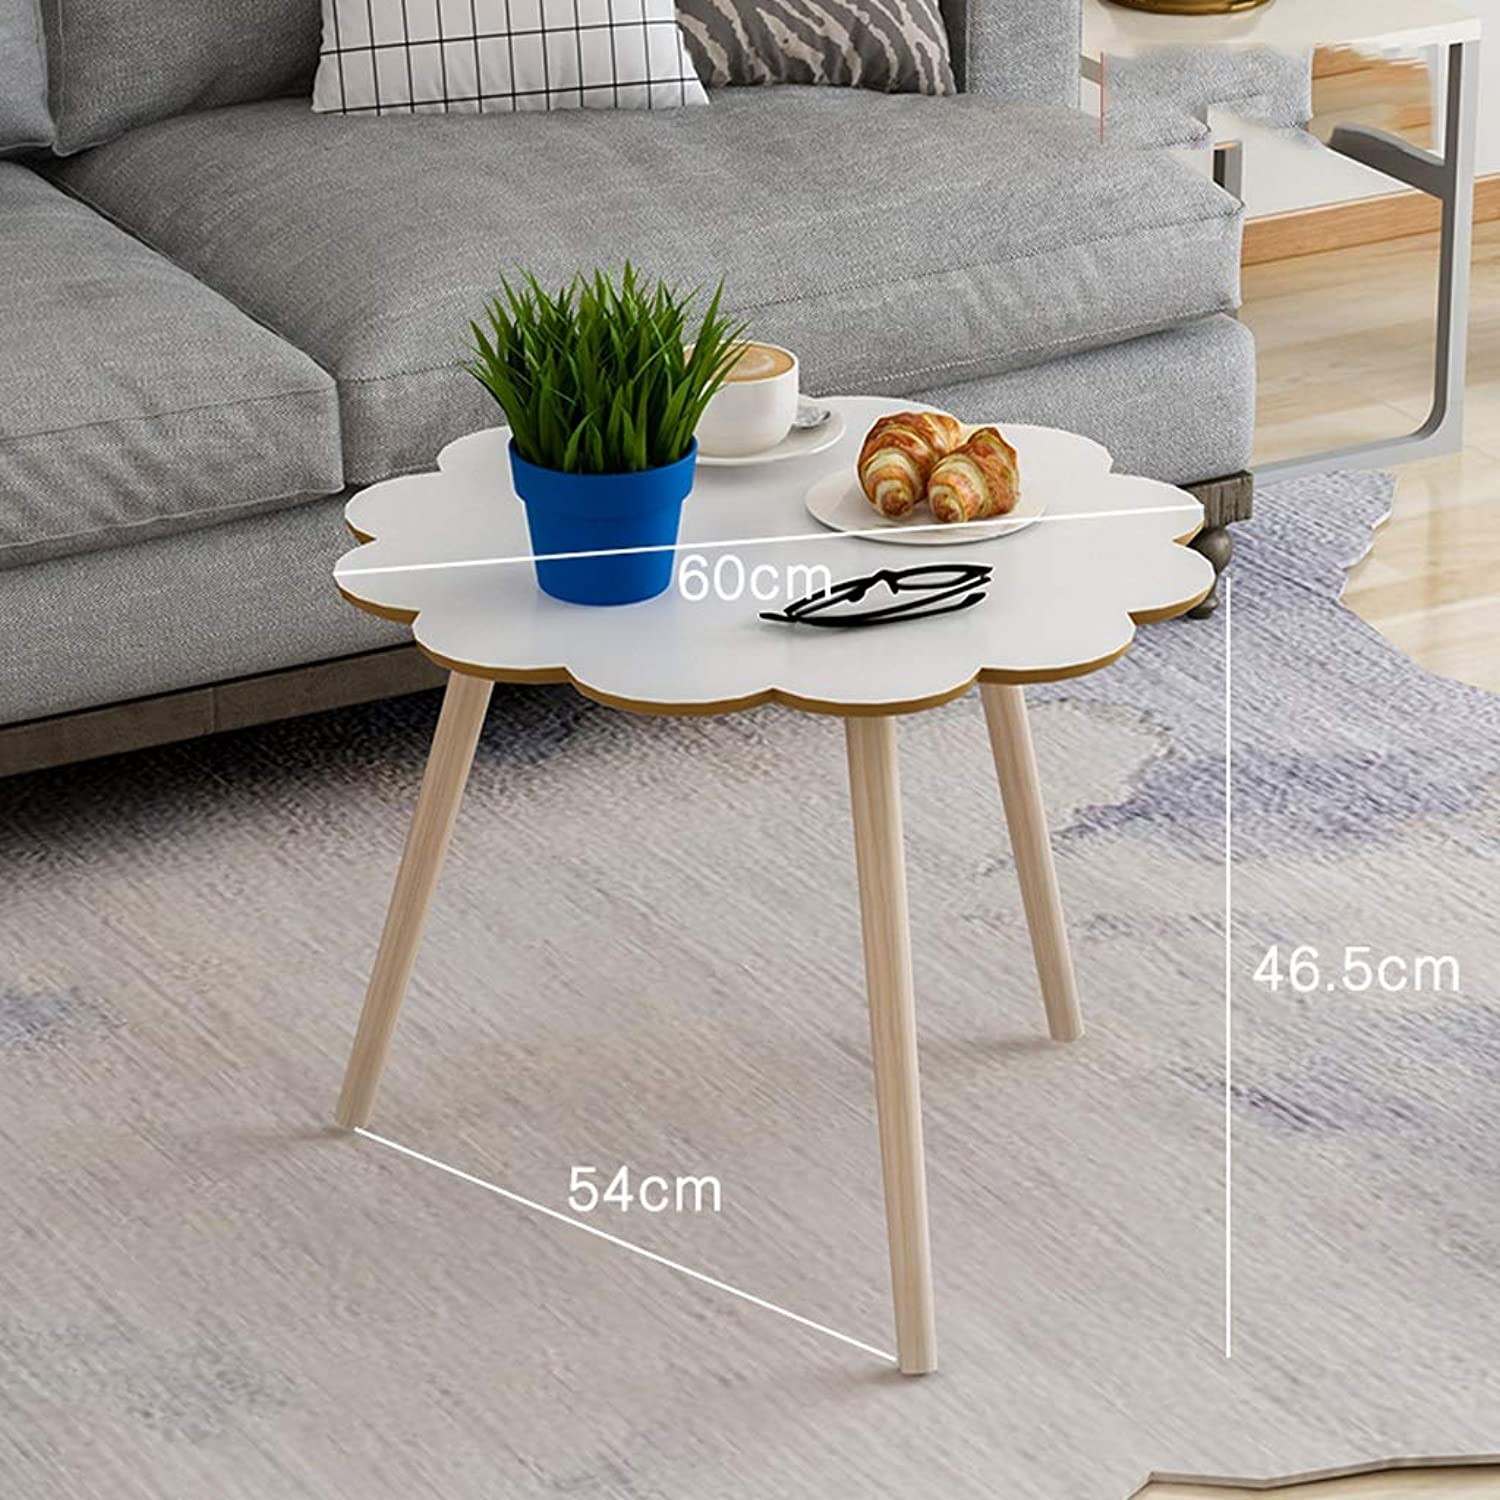 Small Coffee Table Bedside Table Wooden Small Table Sofa Side Table Creative Corners Table (color   Wood)